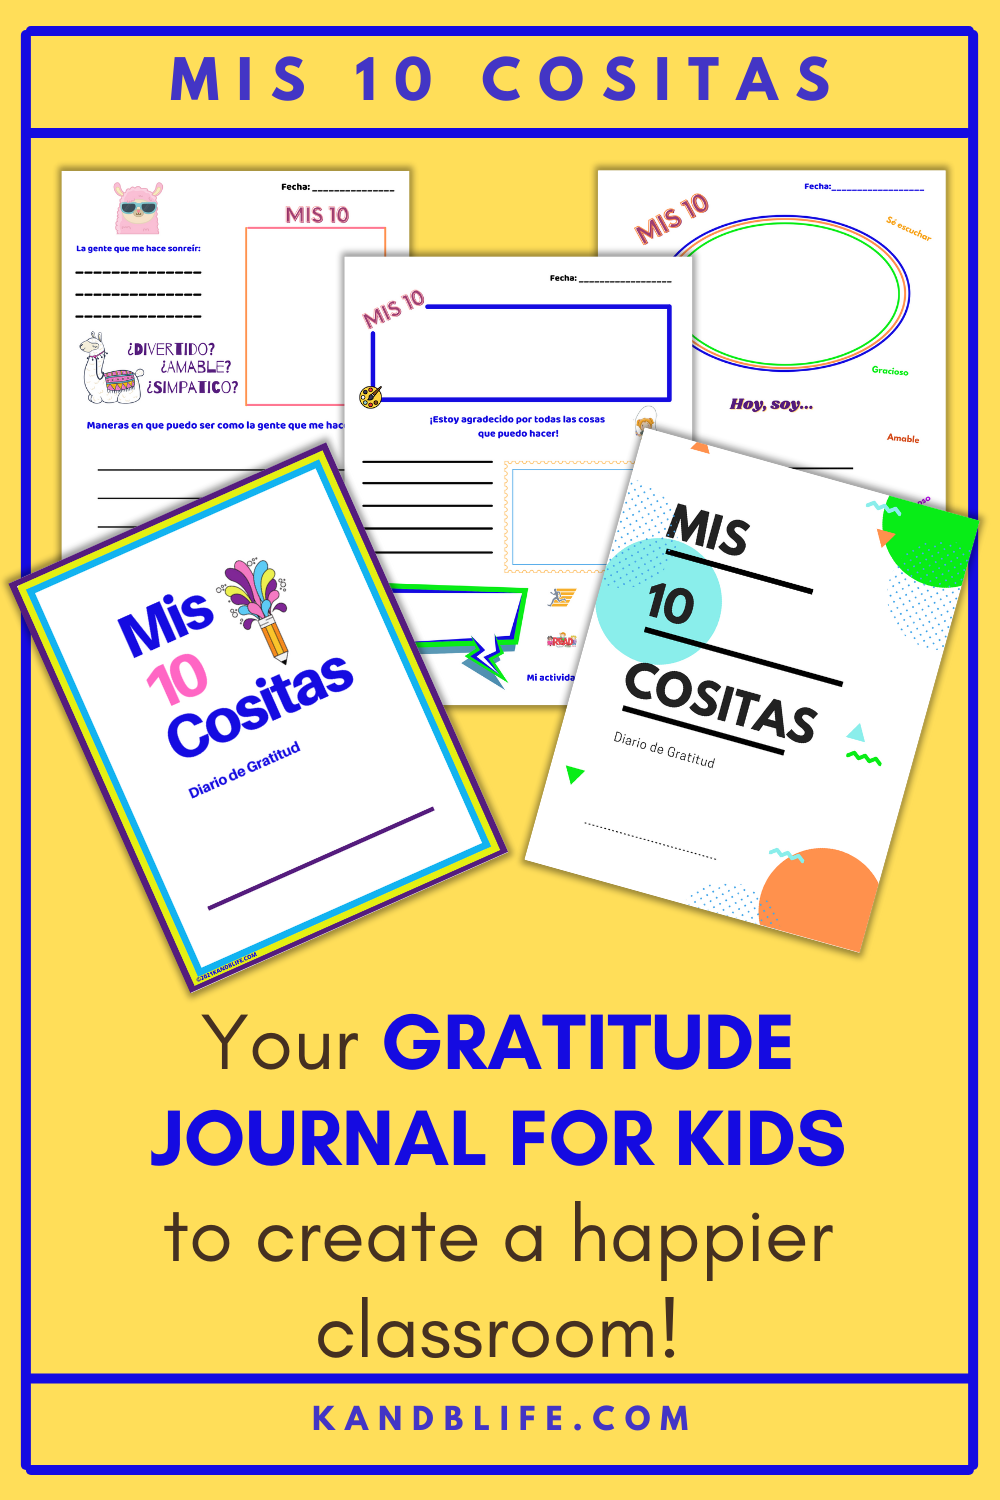 A yellow background with the product, Mis 10 Cositas on it. It's a Gratitude Journal for kids in Spanish.